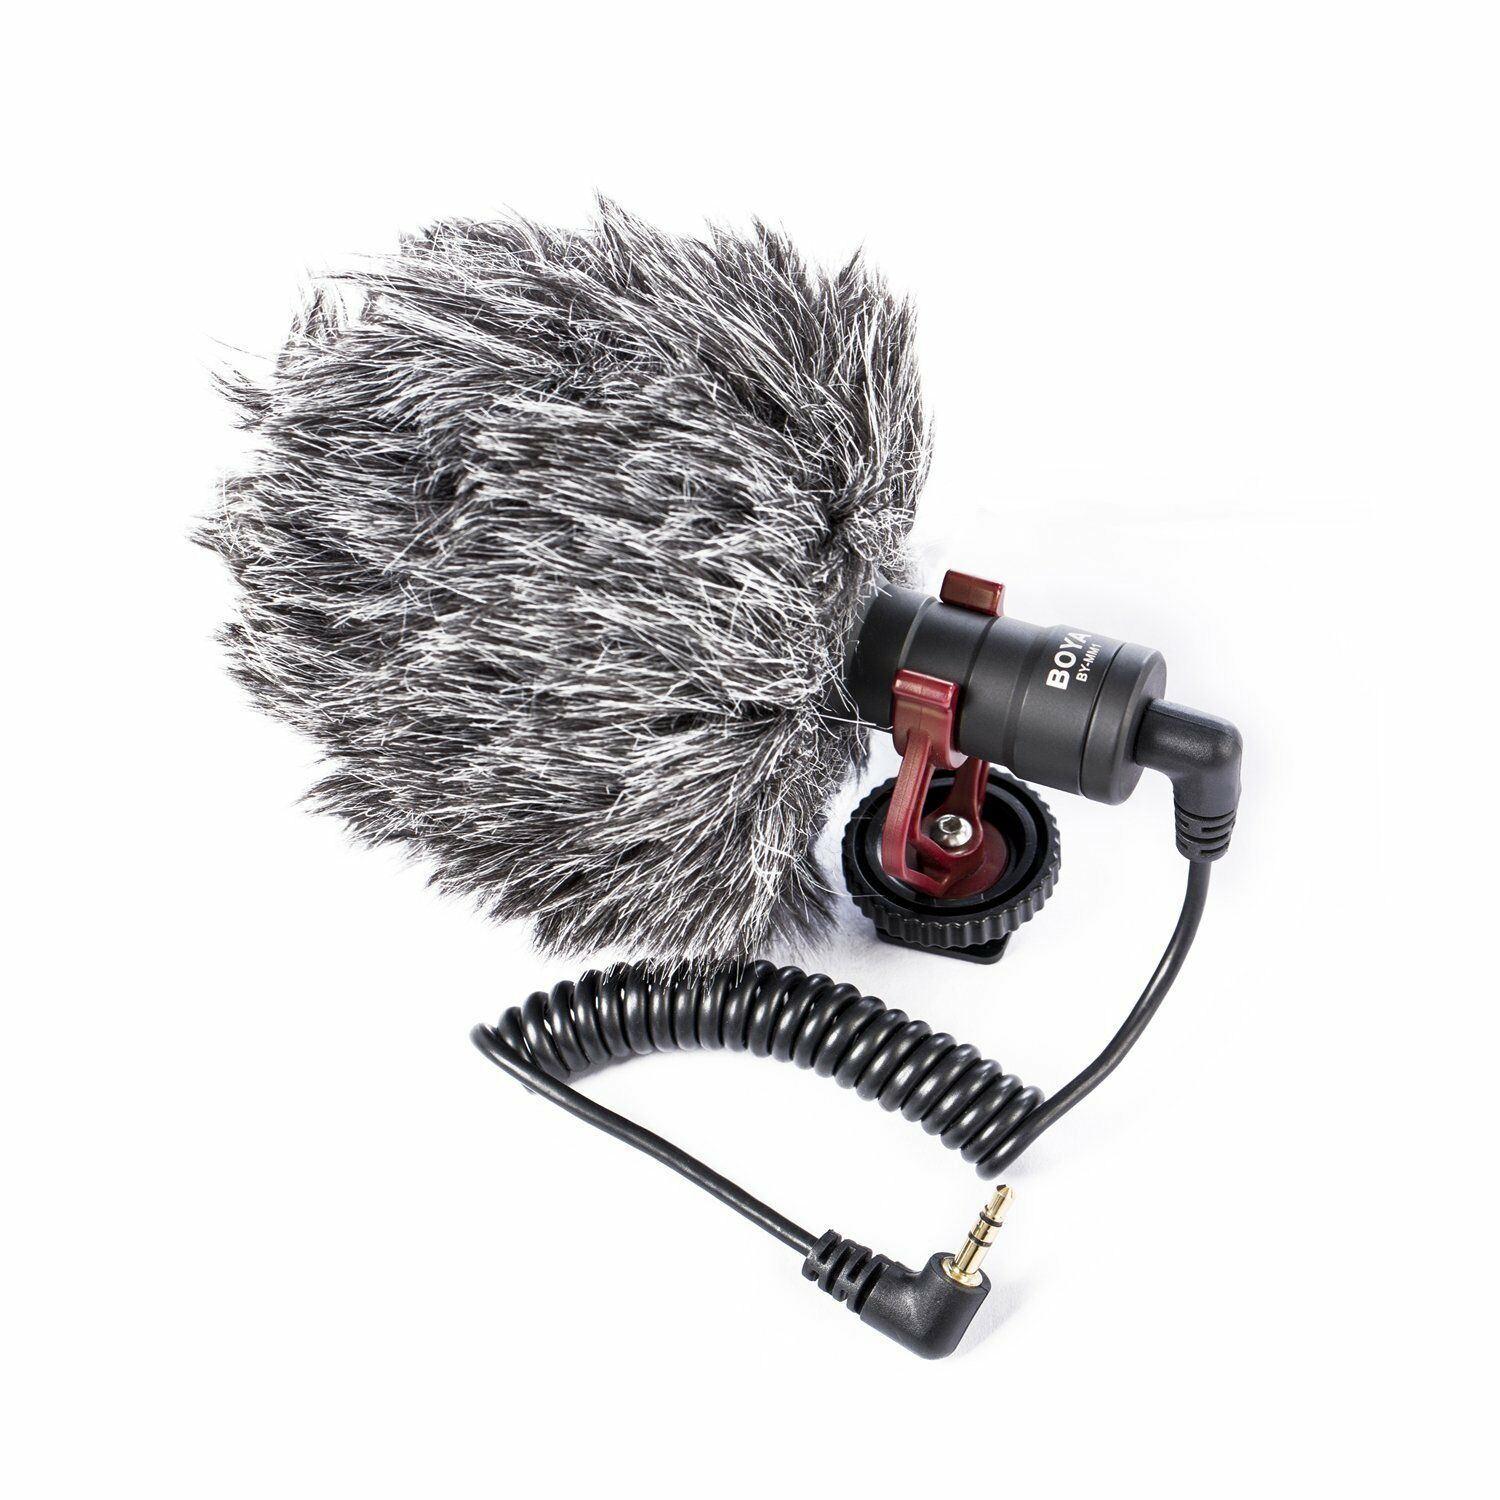 Купить BOYA - BOYA BY-MM1 Universal Cardiod Shotgun Microphone for Smartphone DSLR US Seller